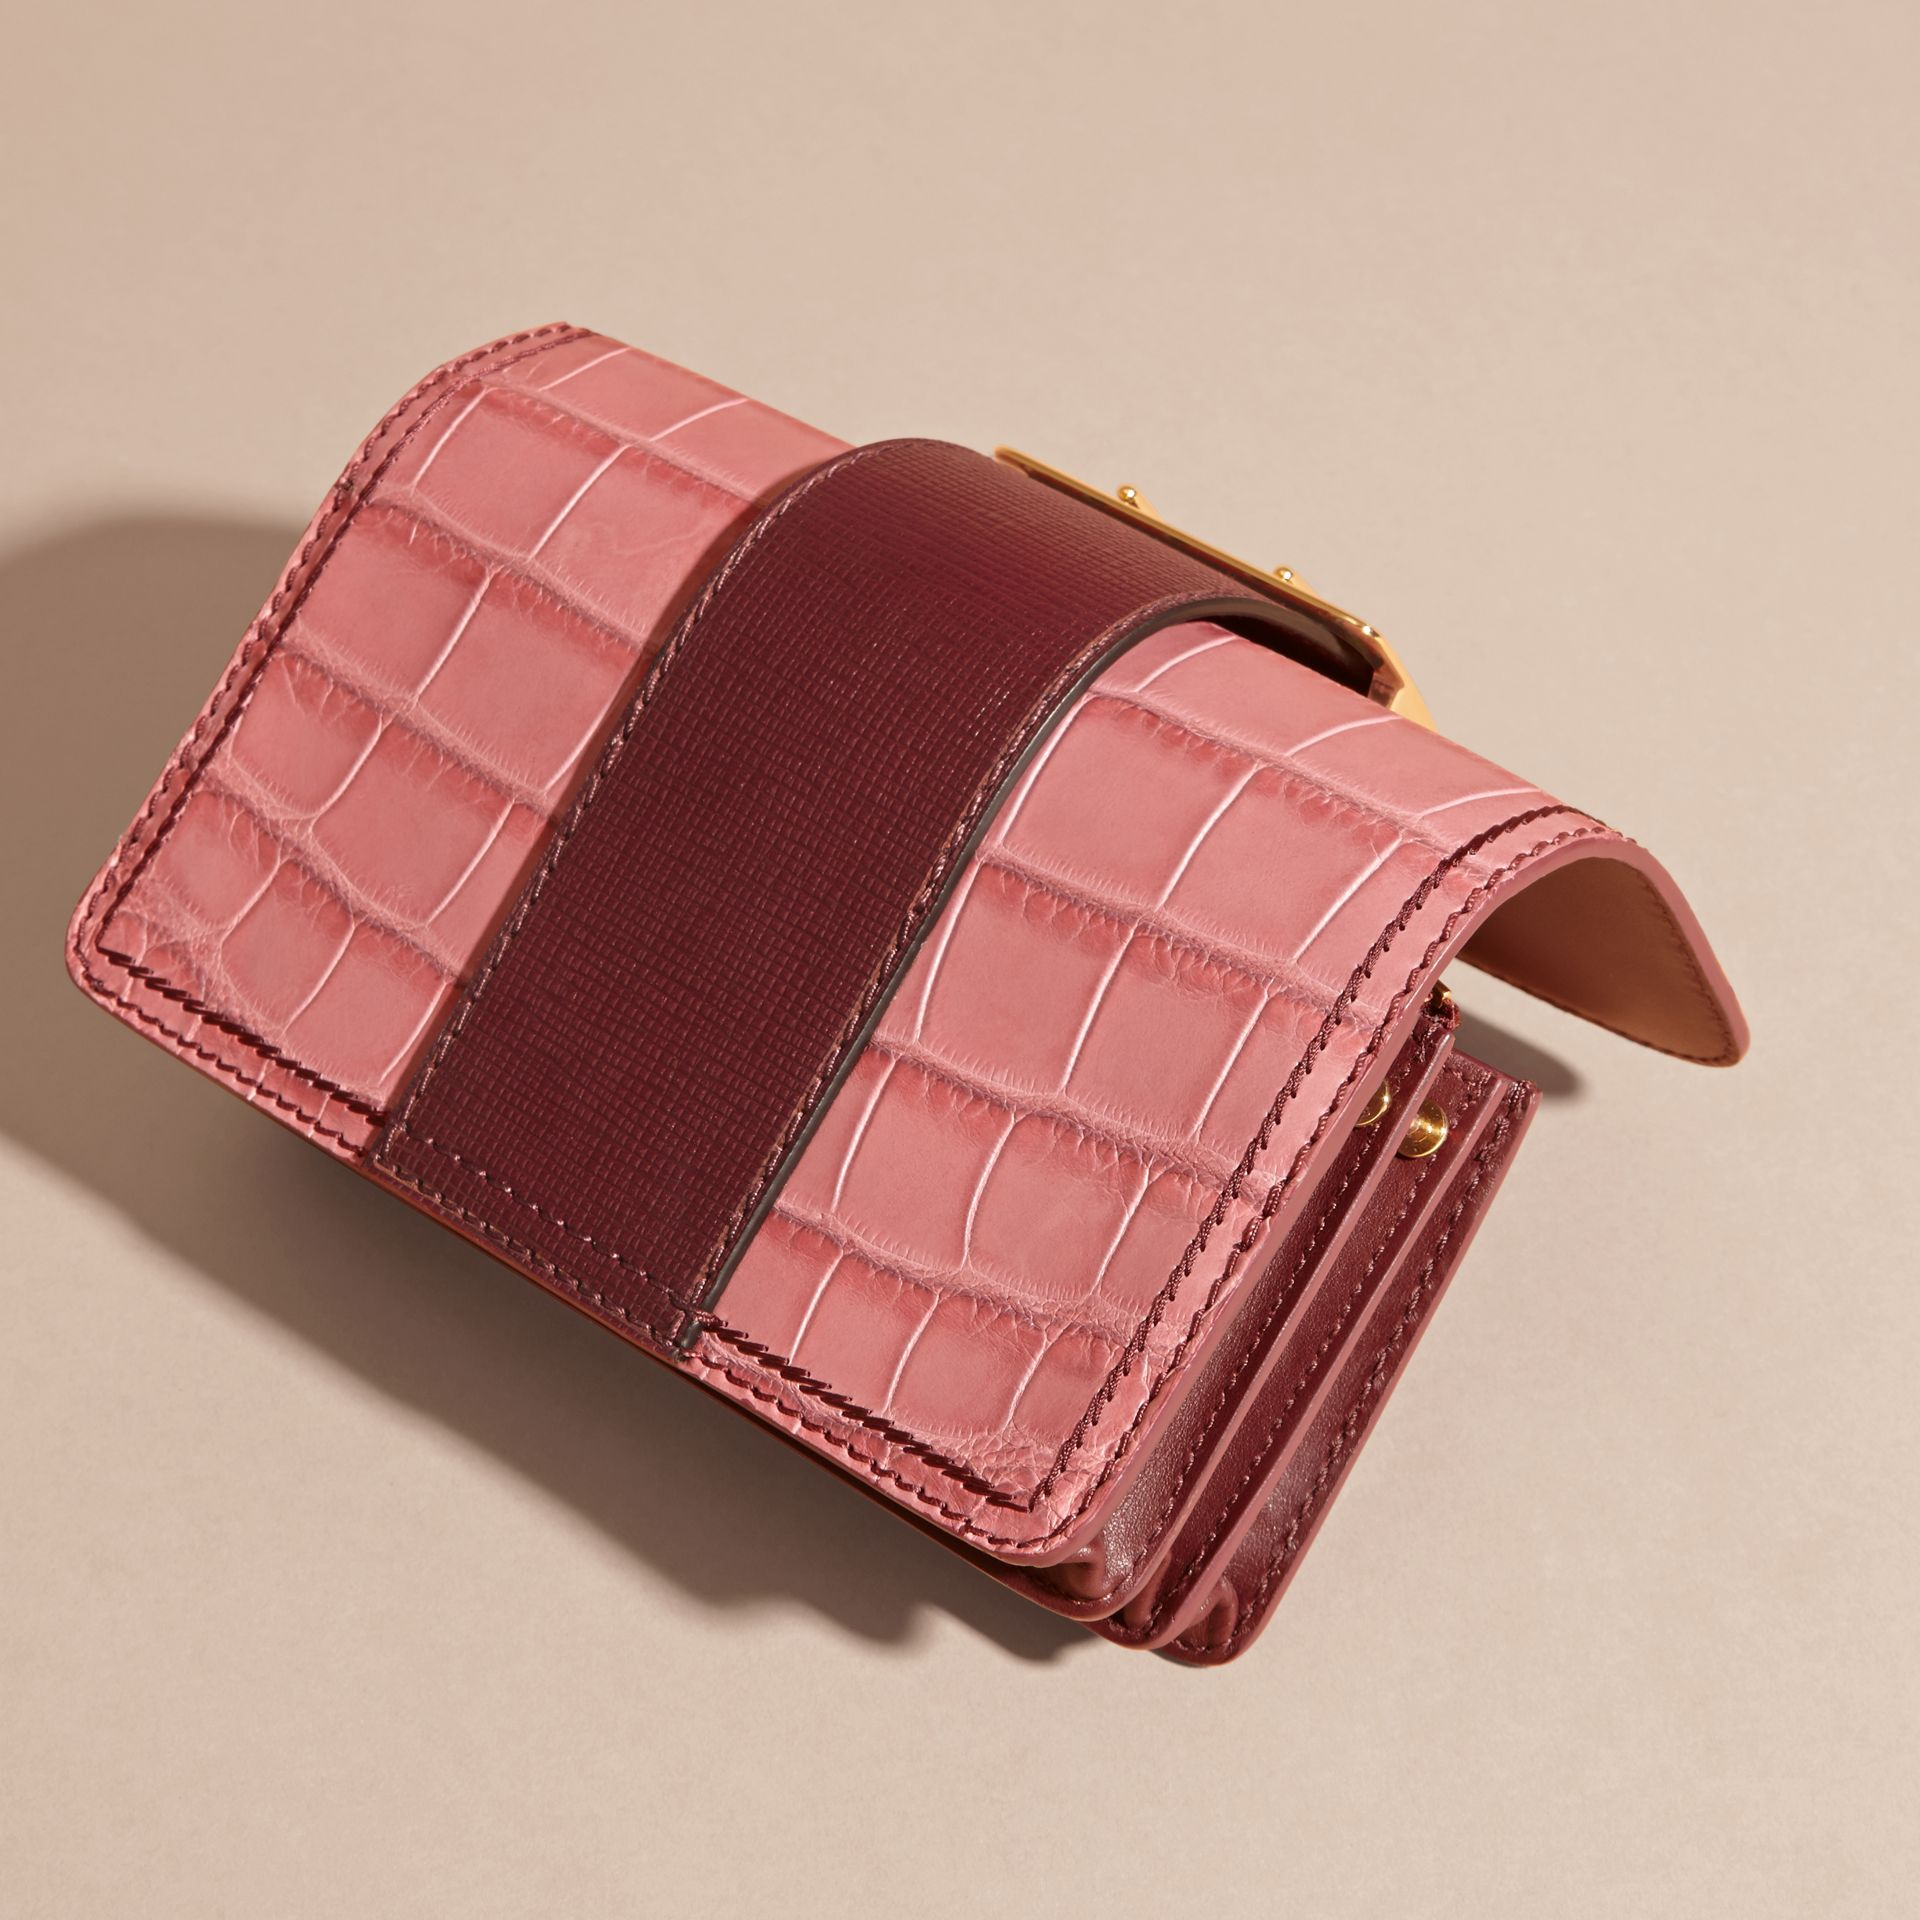 The Small Buckle Bag in Alligator and Leather in Dusky Pink/ Burgundy - Women | Burberry Australia - gallery image 7